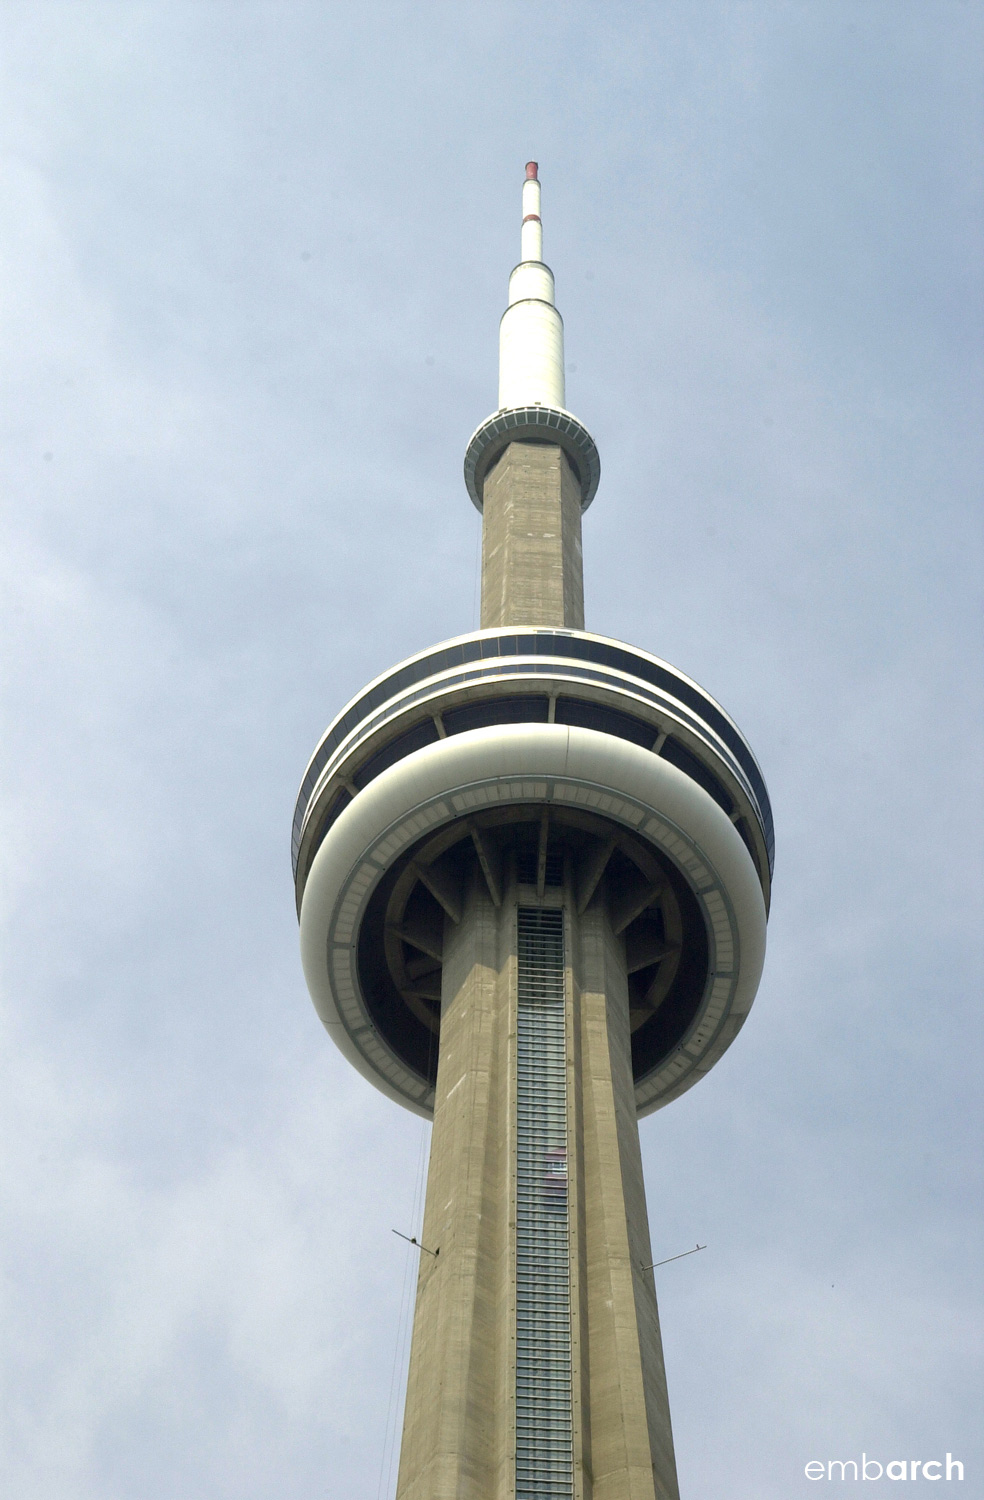 CN Tower - view of the exterior at the top